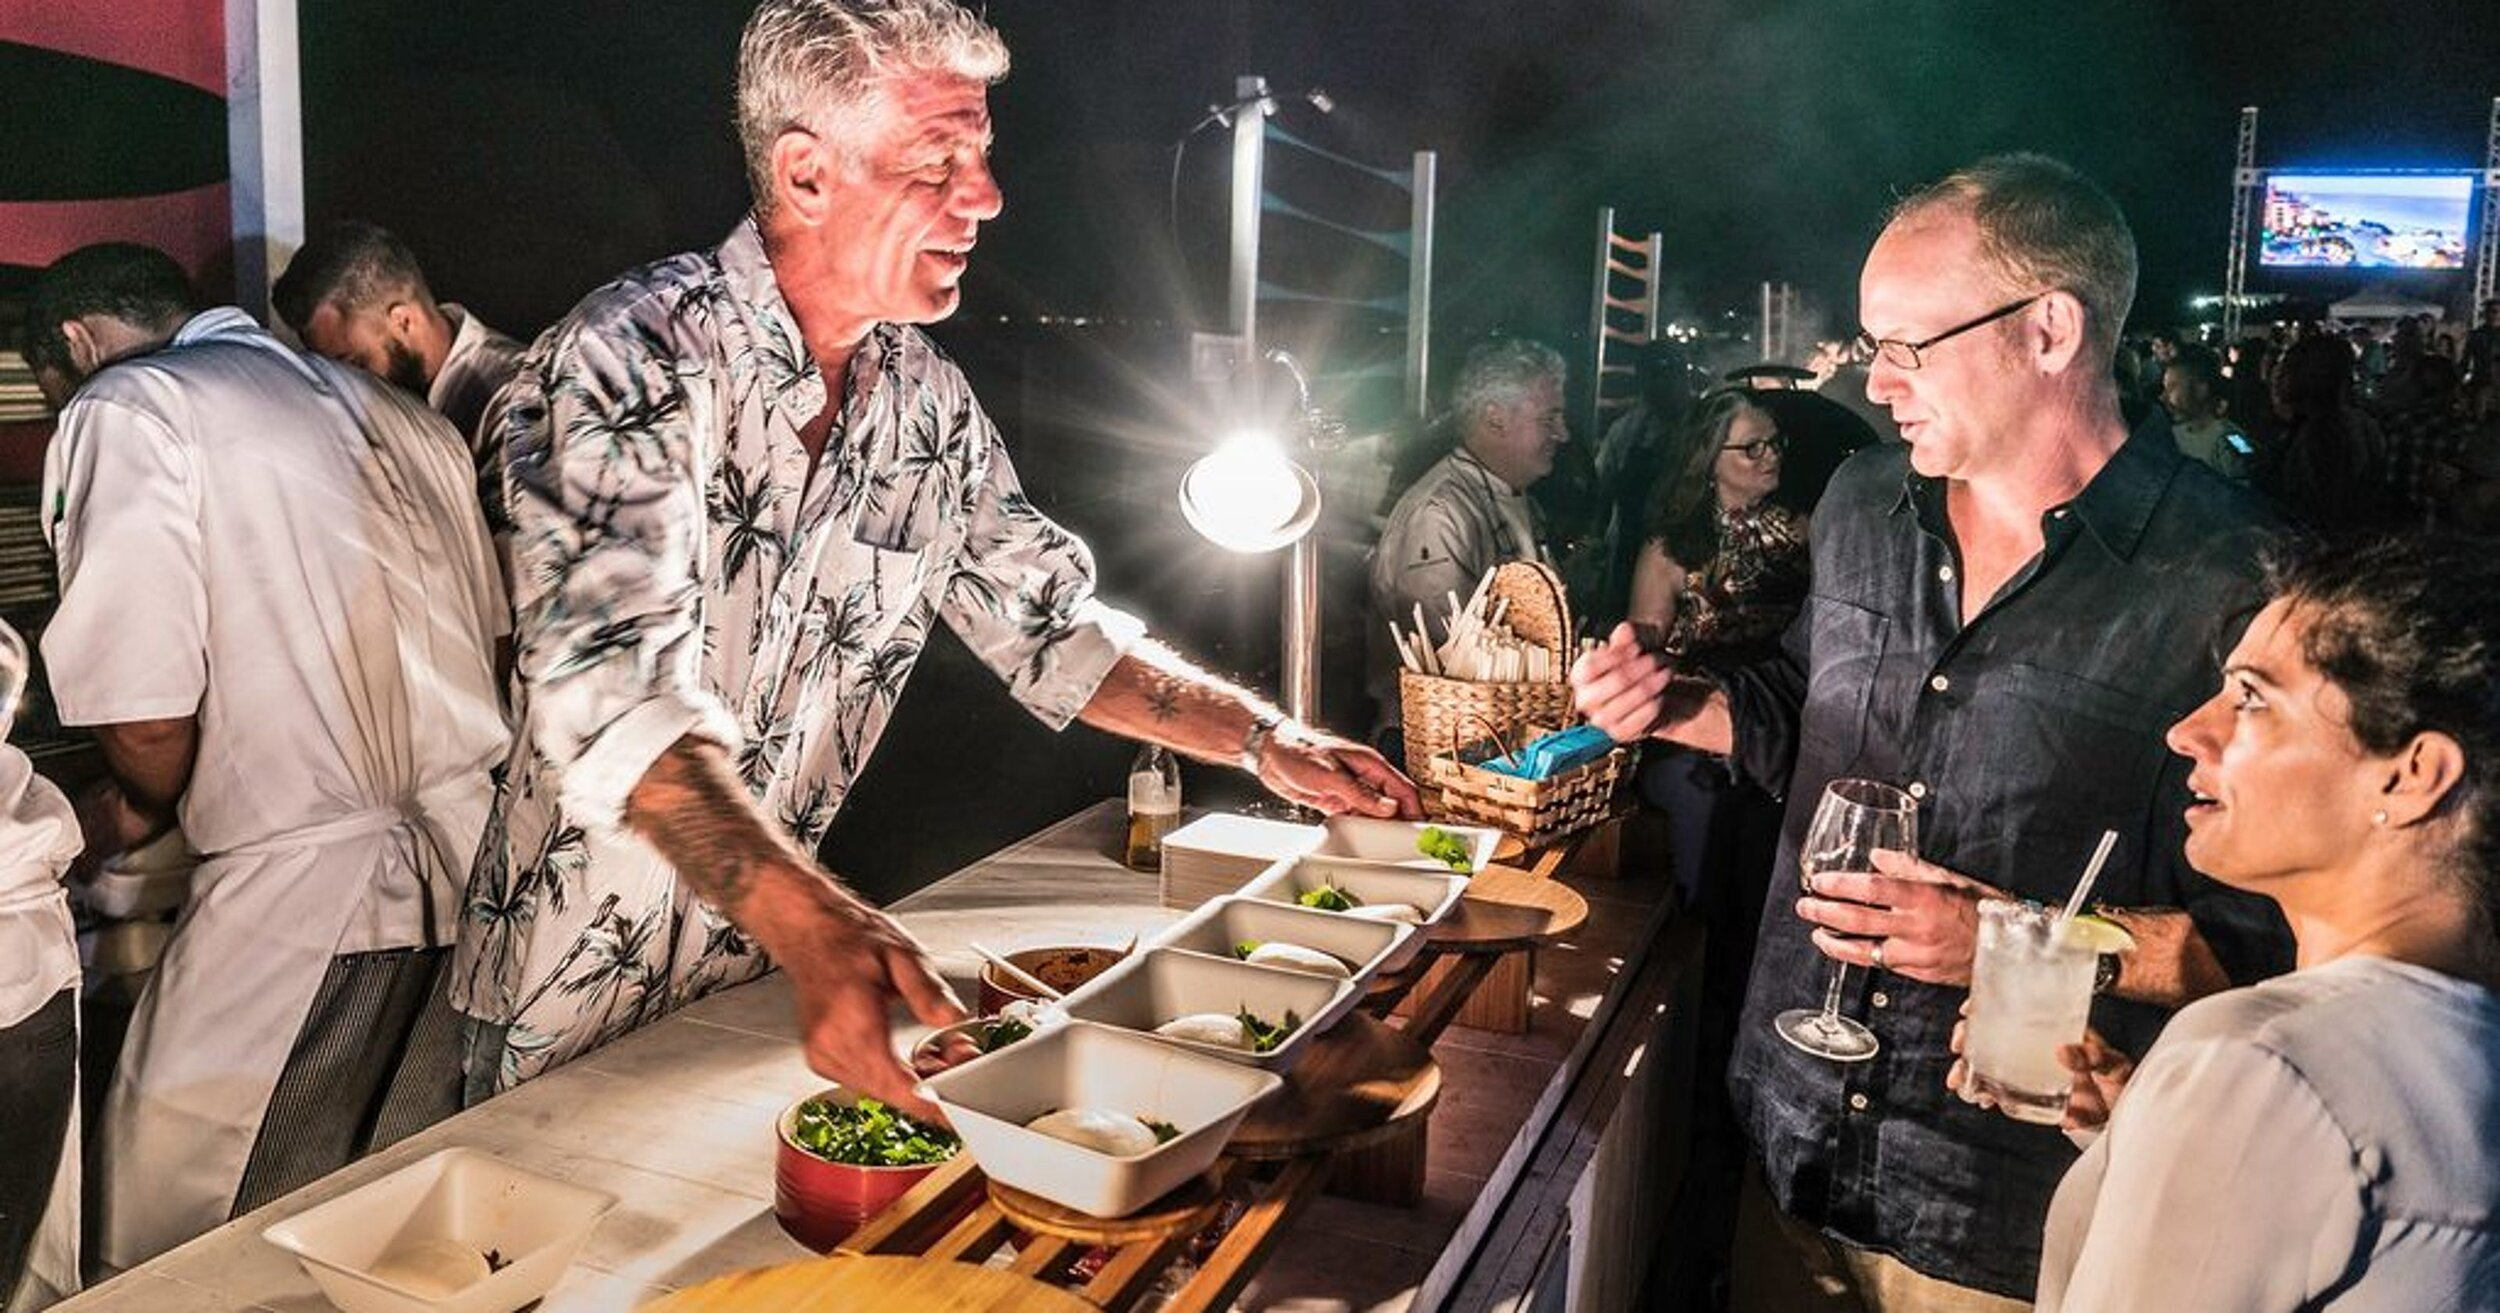 Anthony Bourdain was an enormous inspiration to a lot of people from many different walks of life.